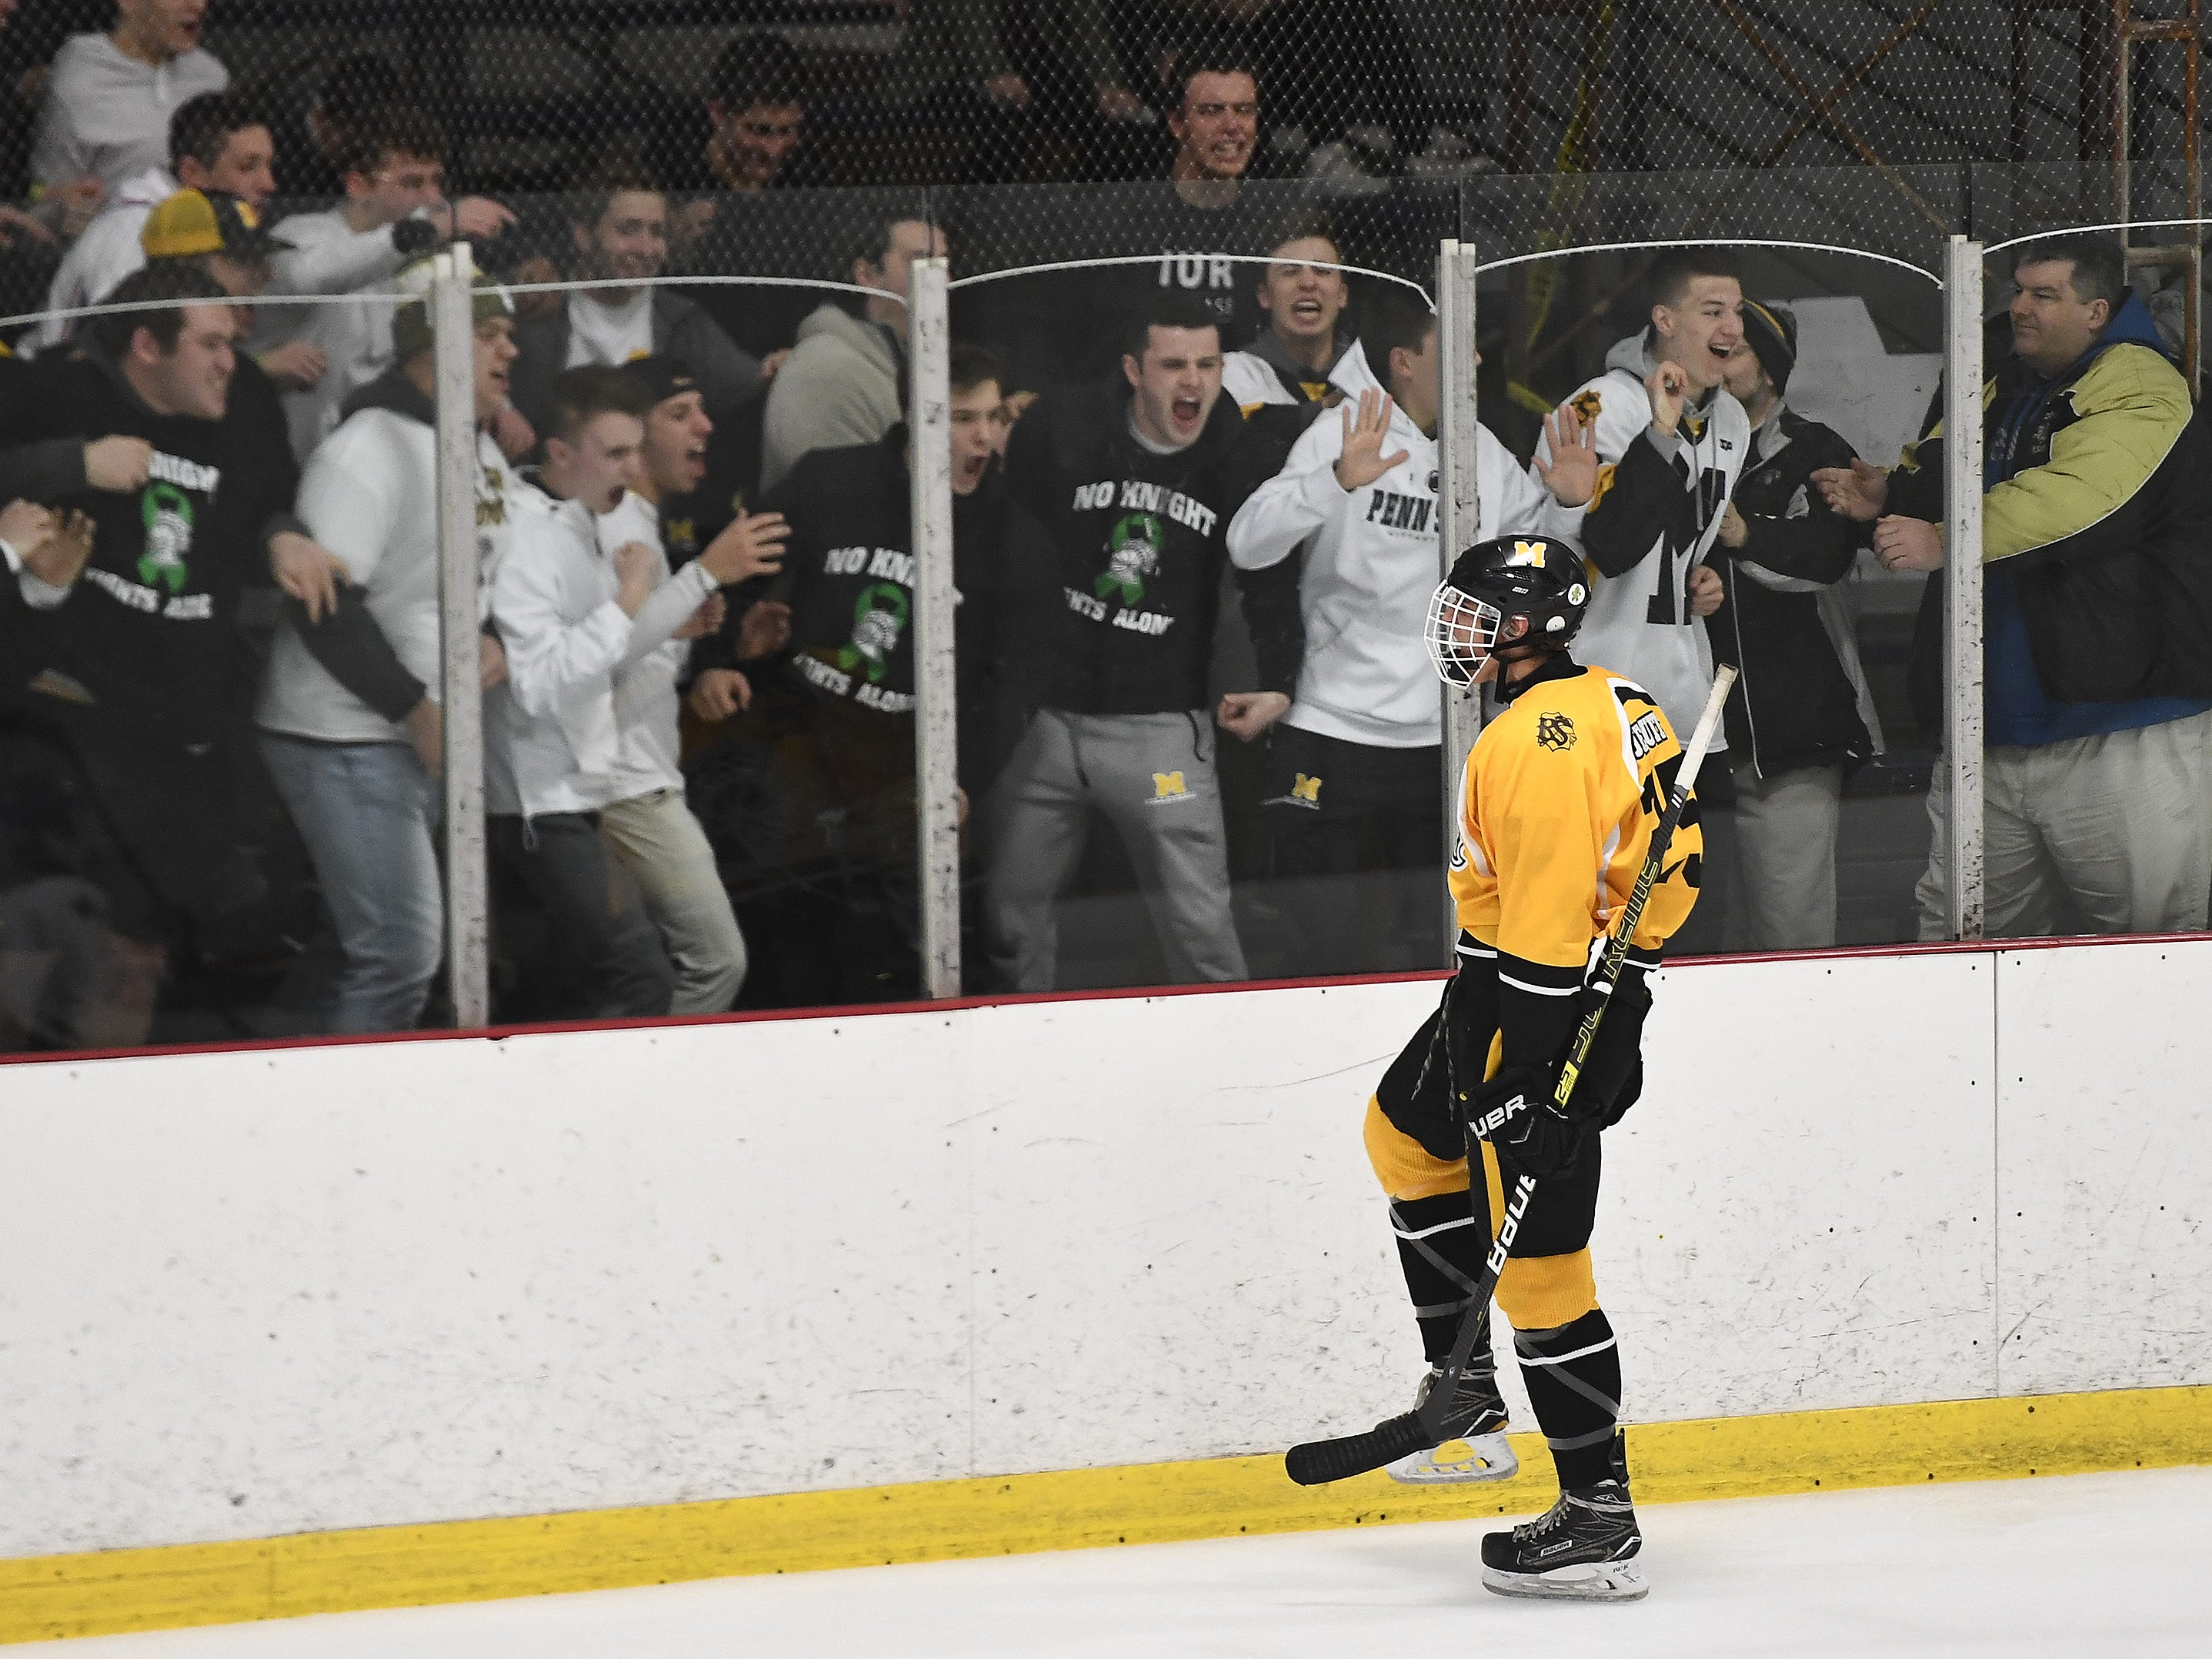 McQuaid's Quinn Tata celebrates with fans after scoring the Knights' third goal during the second period of a regular season game against Fairport played at the Rochester Ice Center, Wednesday, Feb. 6, 2019. McQuaid beat Fairport 5-4 in overtime.